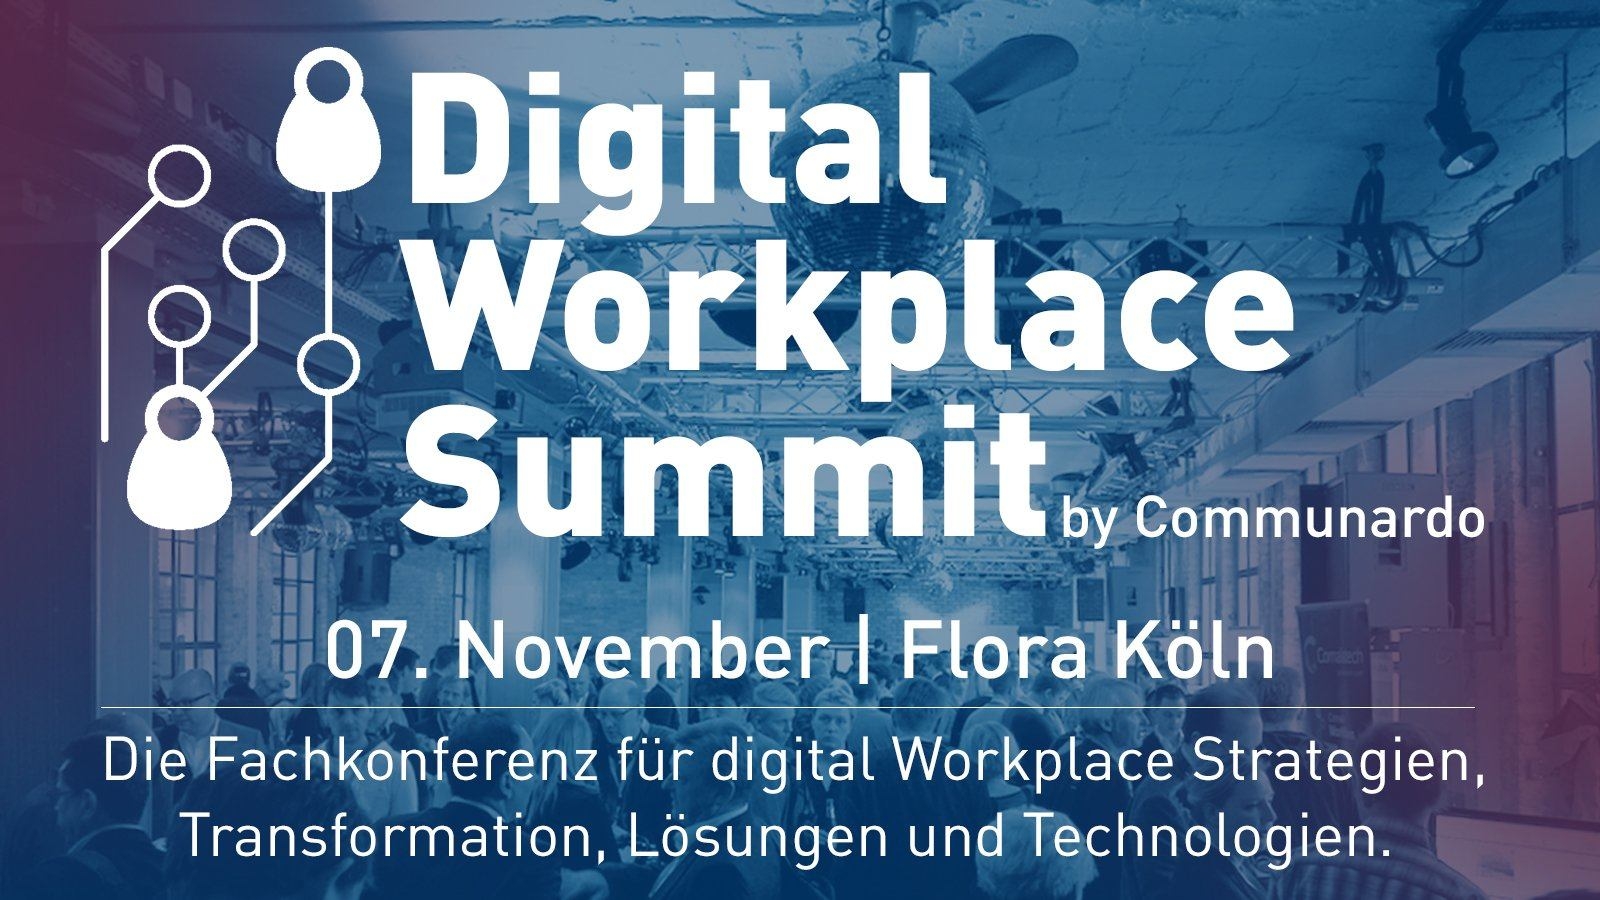 DWSC Digital Workplace Summit 2017 am 7.11.17 in Flora Köln #DWSC17